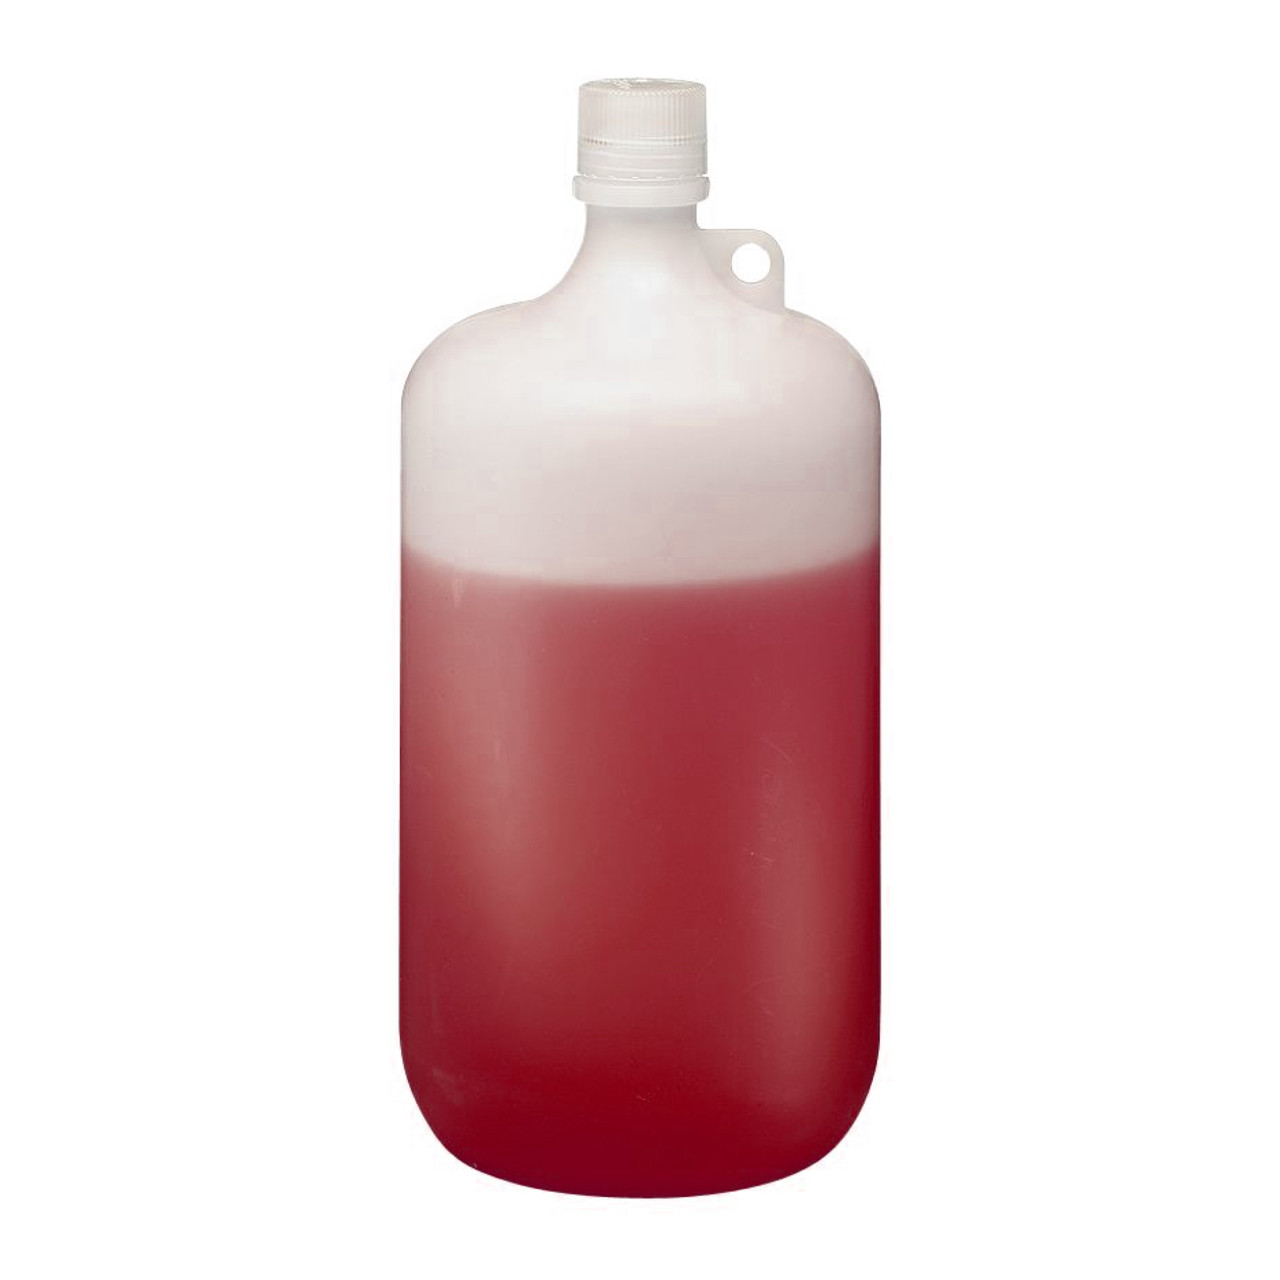 4 Liter LDPE Bottle with 38-430 Cap